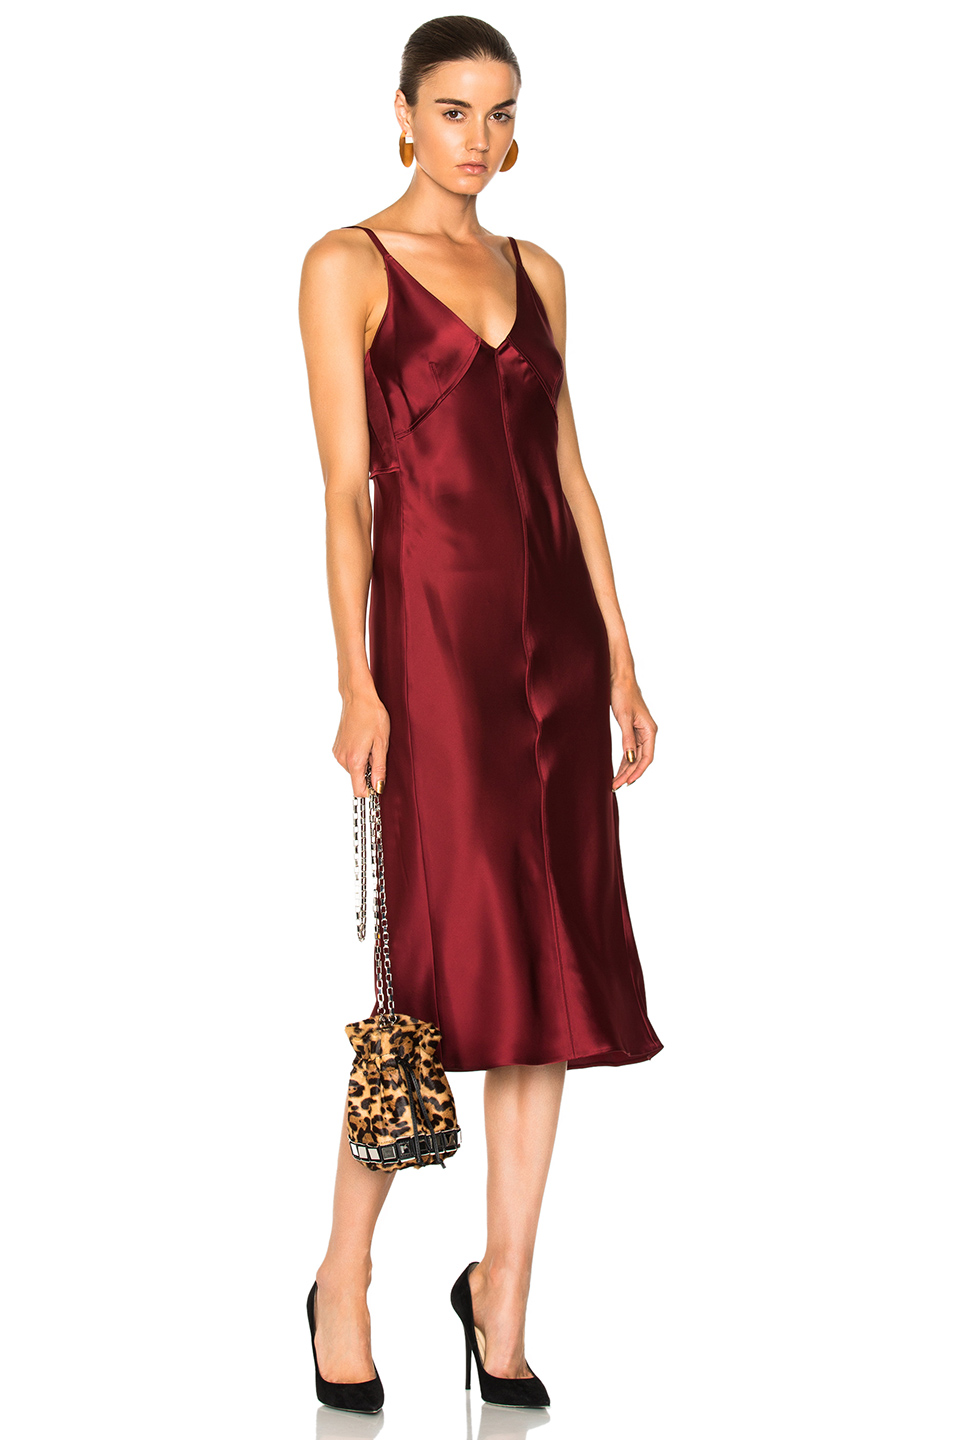 Helmut Lang Deconstructed Slip Dress in Red